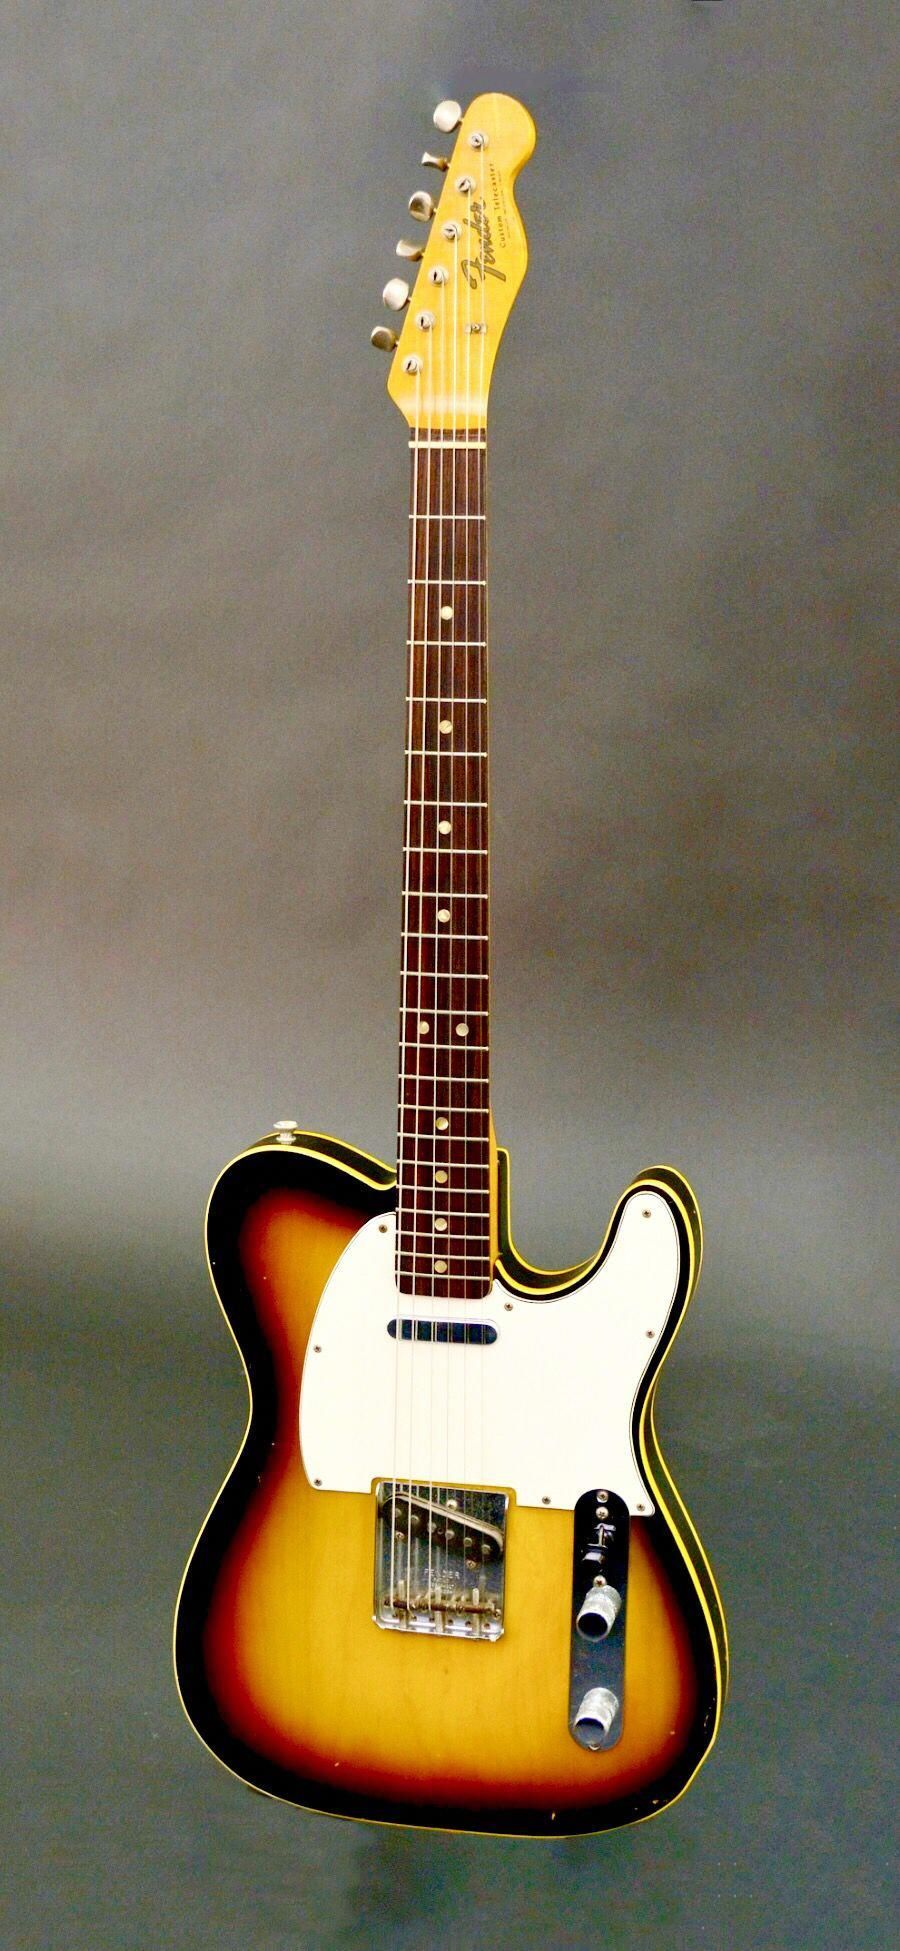 These fender bass guitar are great fenderbassguitar